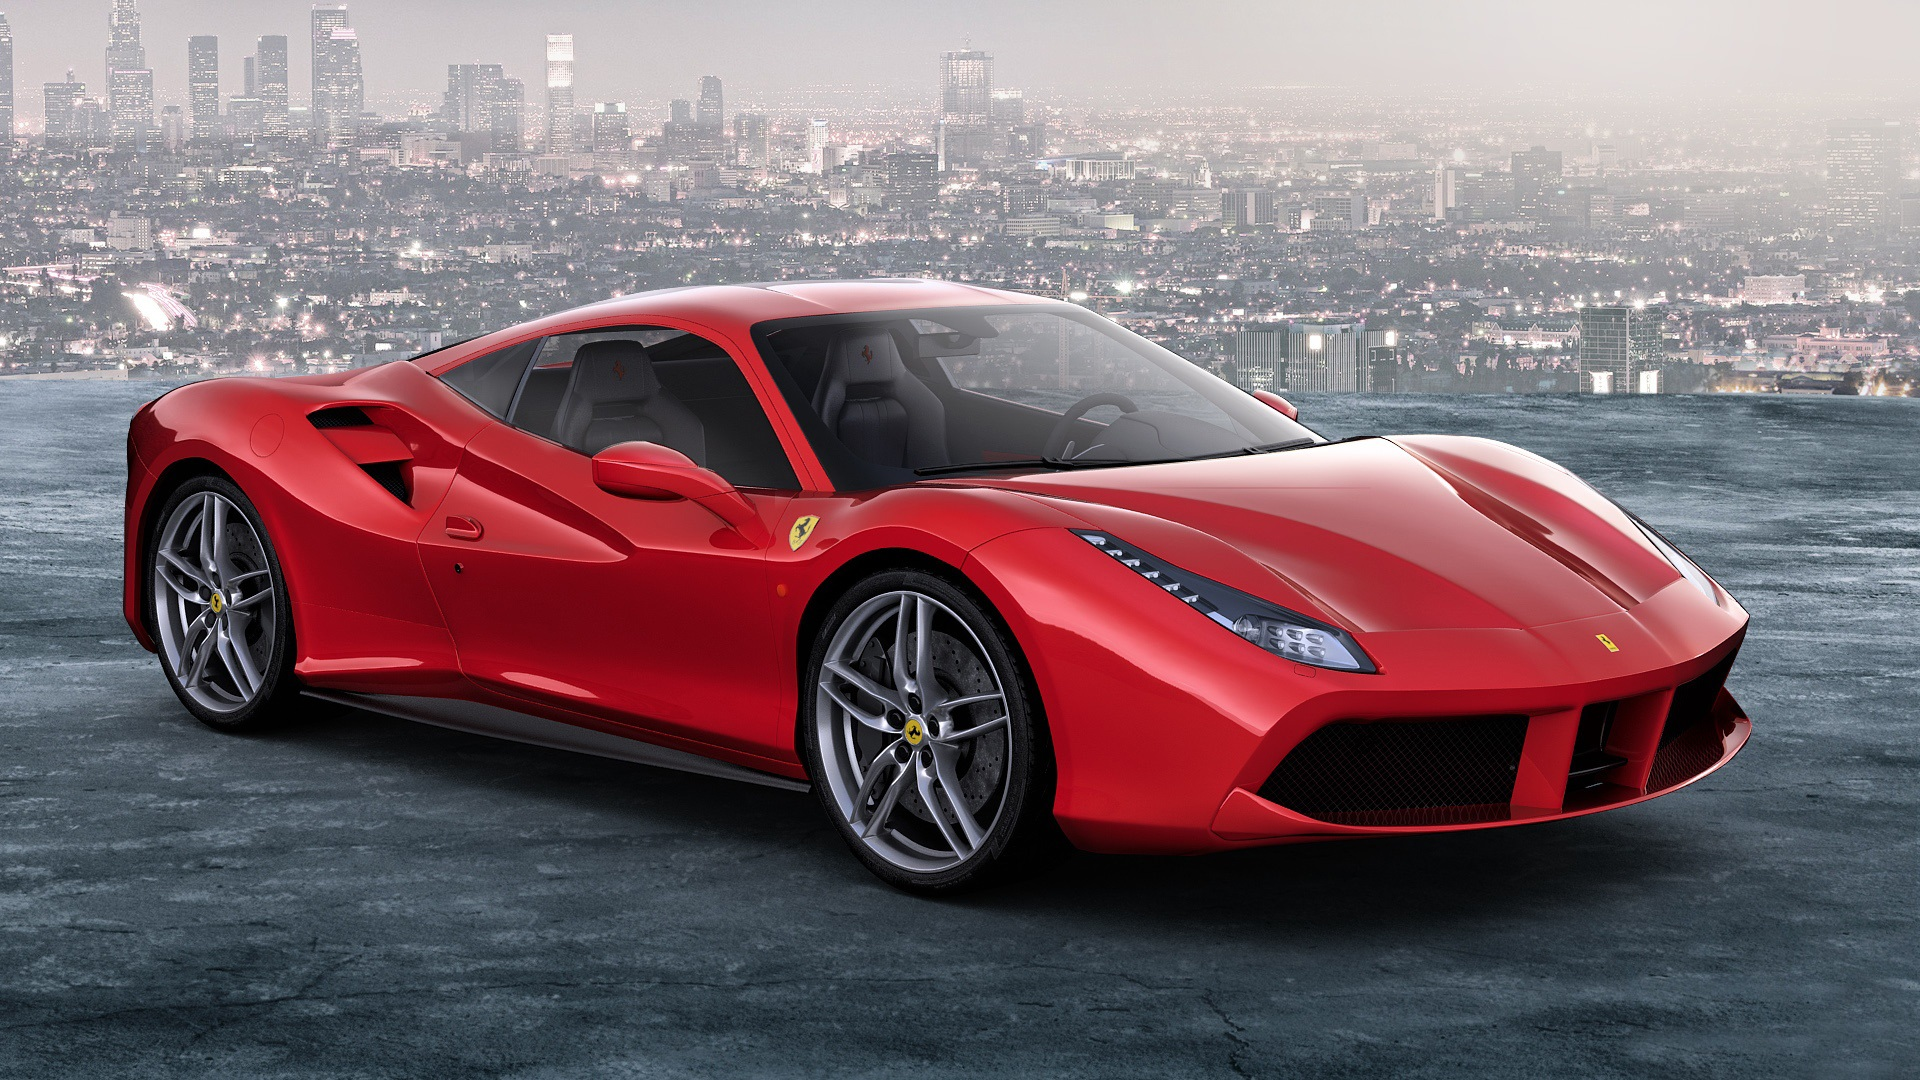 Wallpaper Ferrari 488 Gtb Red Supercar 1920x1080 Full Hd 2k Picture